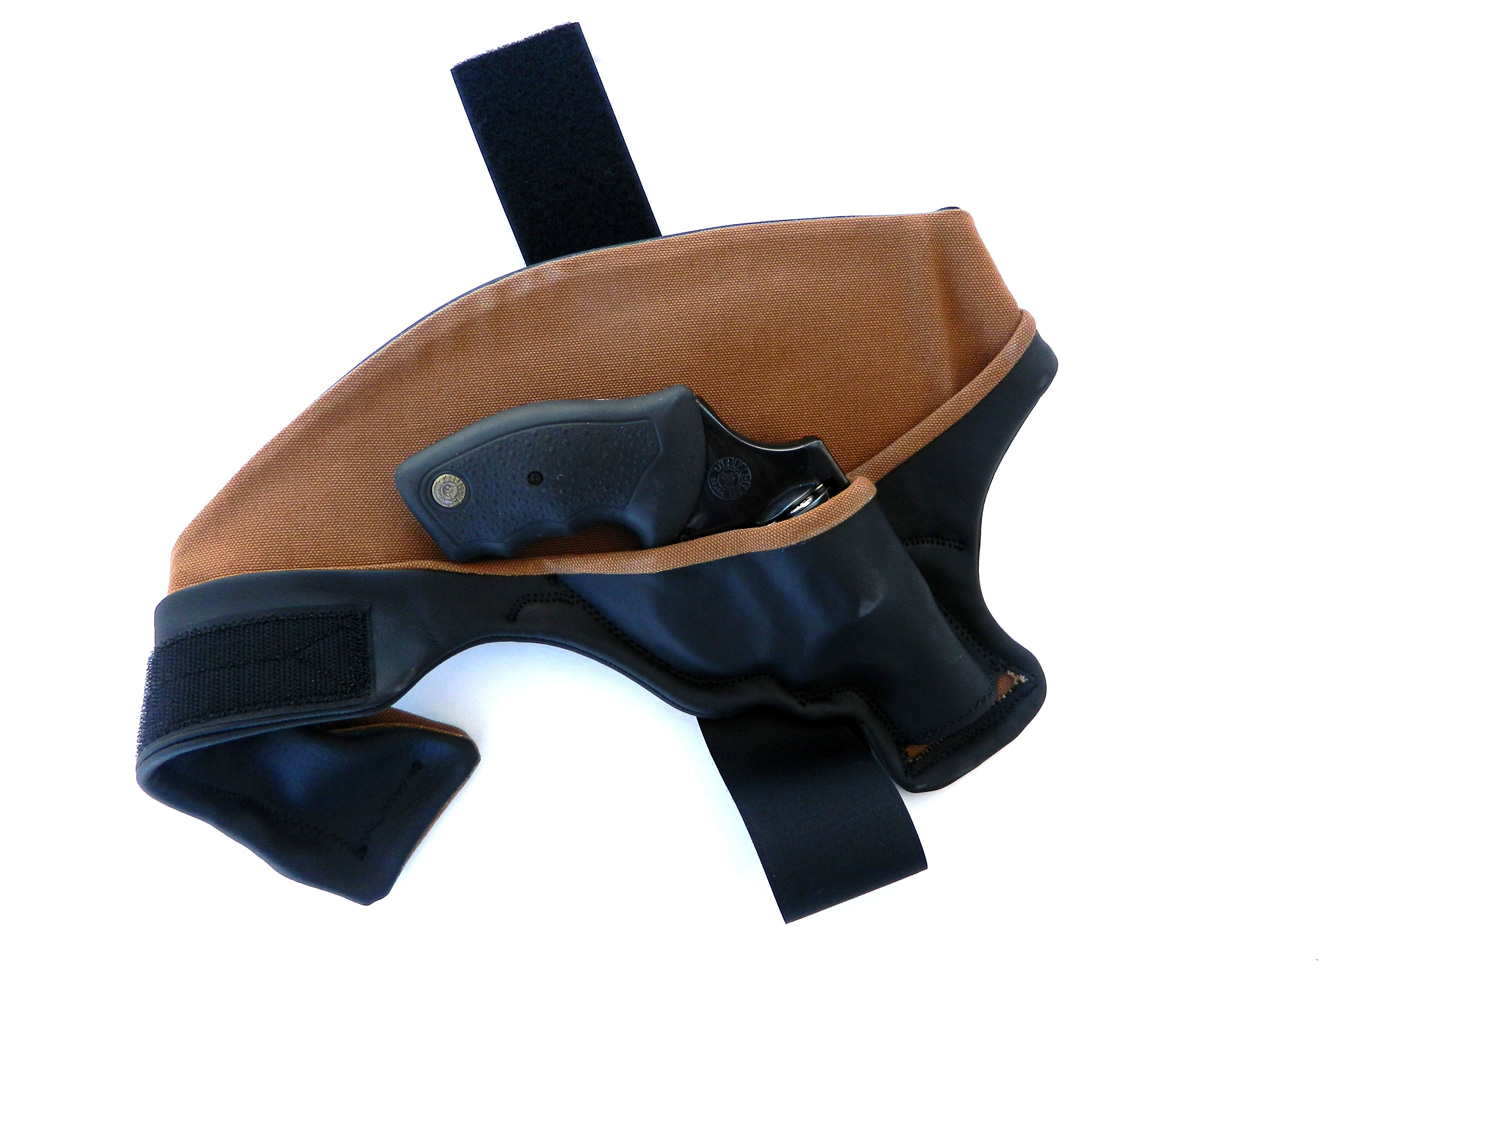 3Speed holster with Taurus 605 .357 Magnum revolver inside